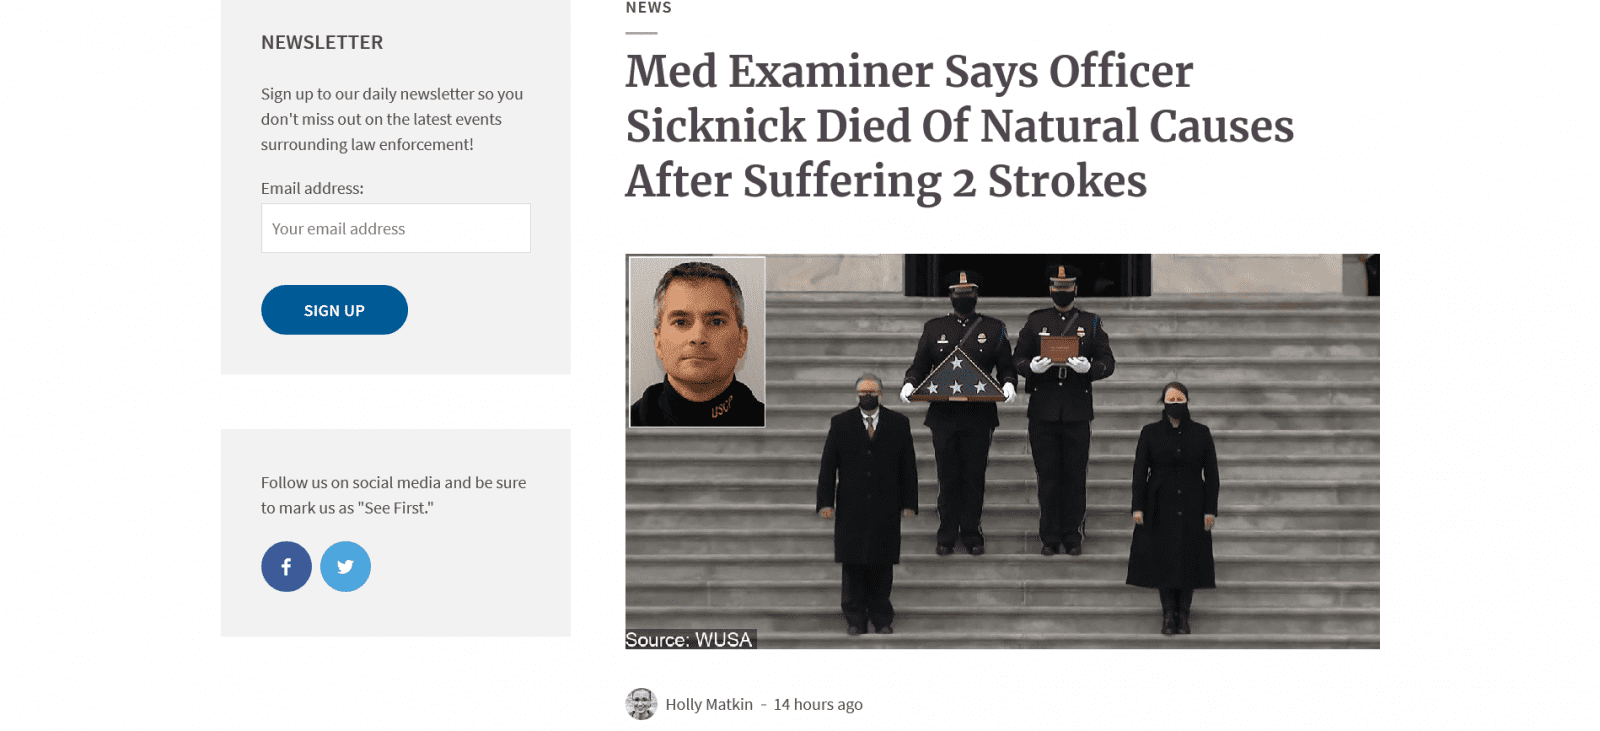 Screenshot_2021-04-20 Med Examiner Says Officer Sicknick Died Of Natural Causes After Sufferin...png